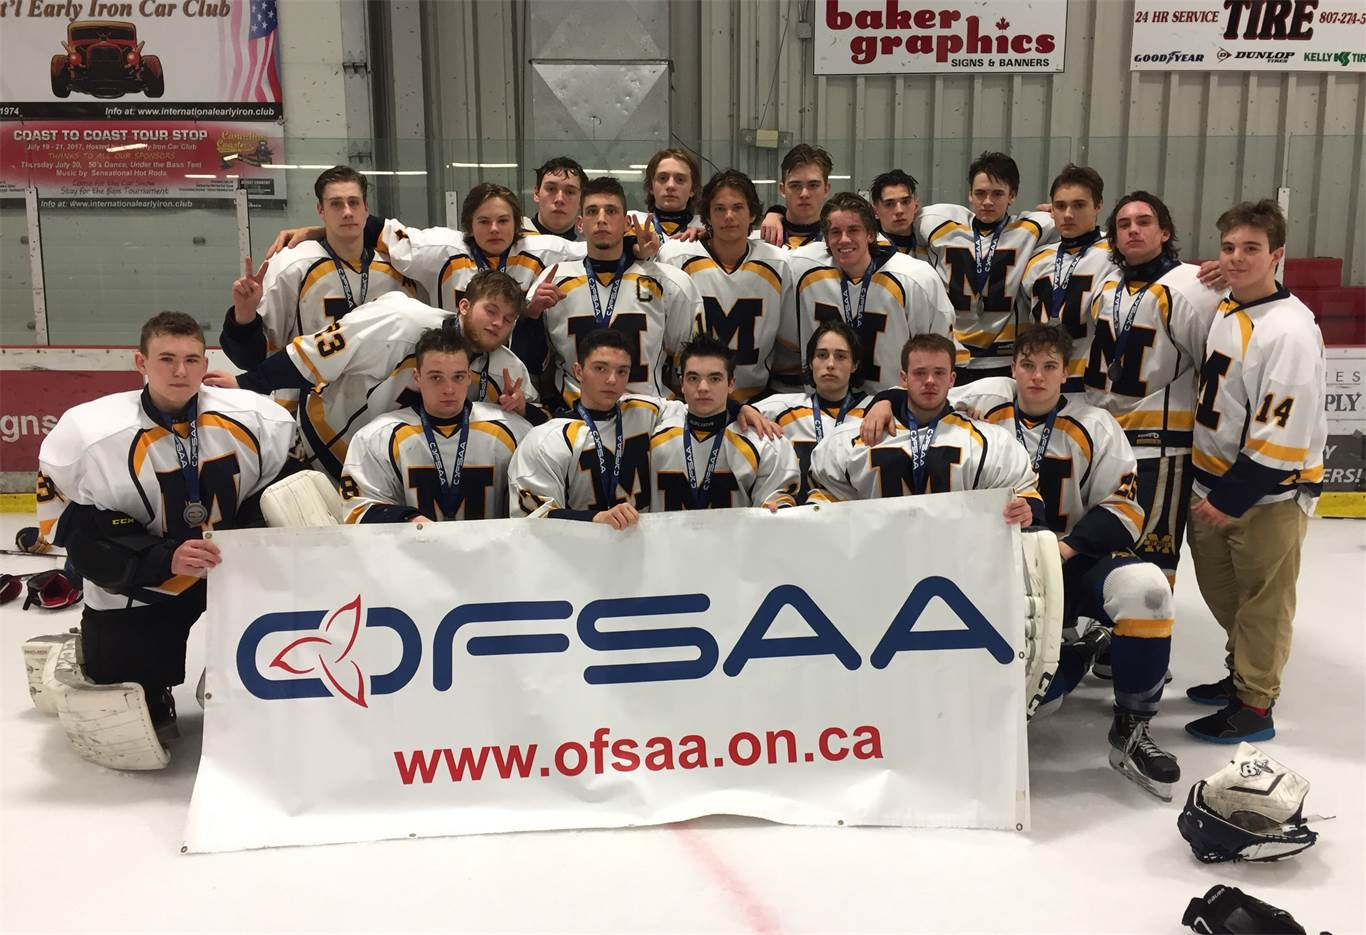 crusaders capture silver at hockey showcase event photo by paul roe